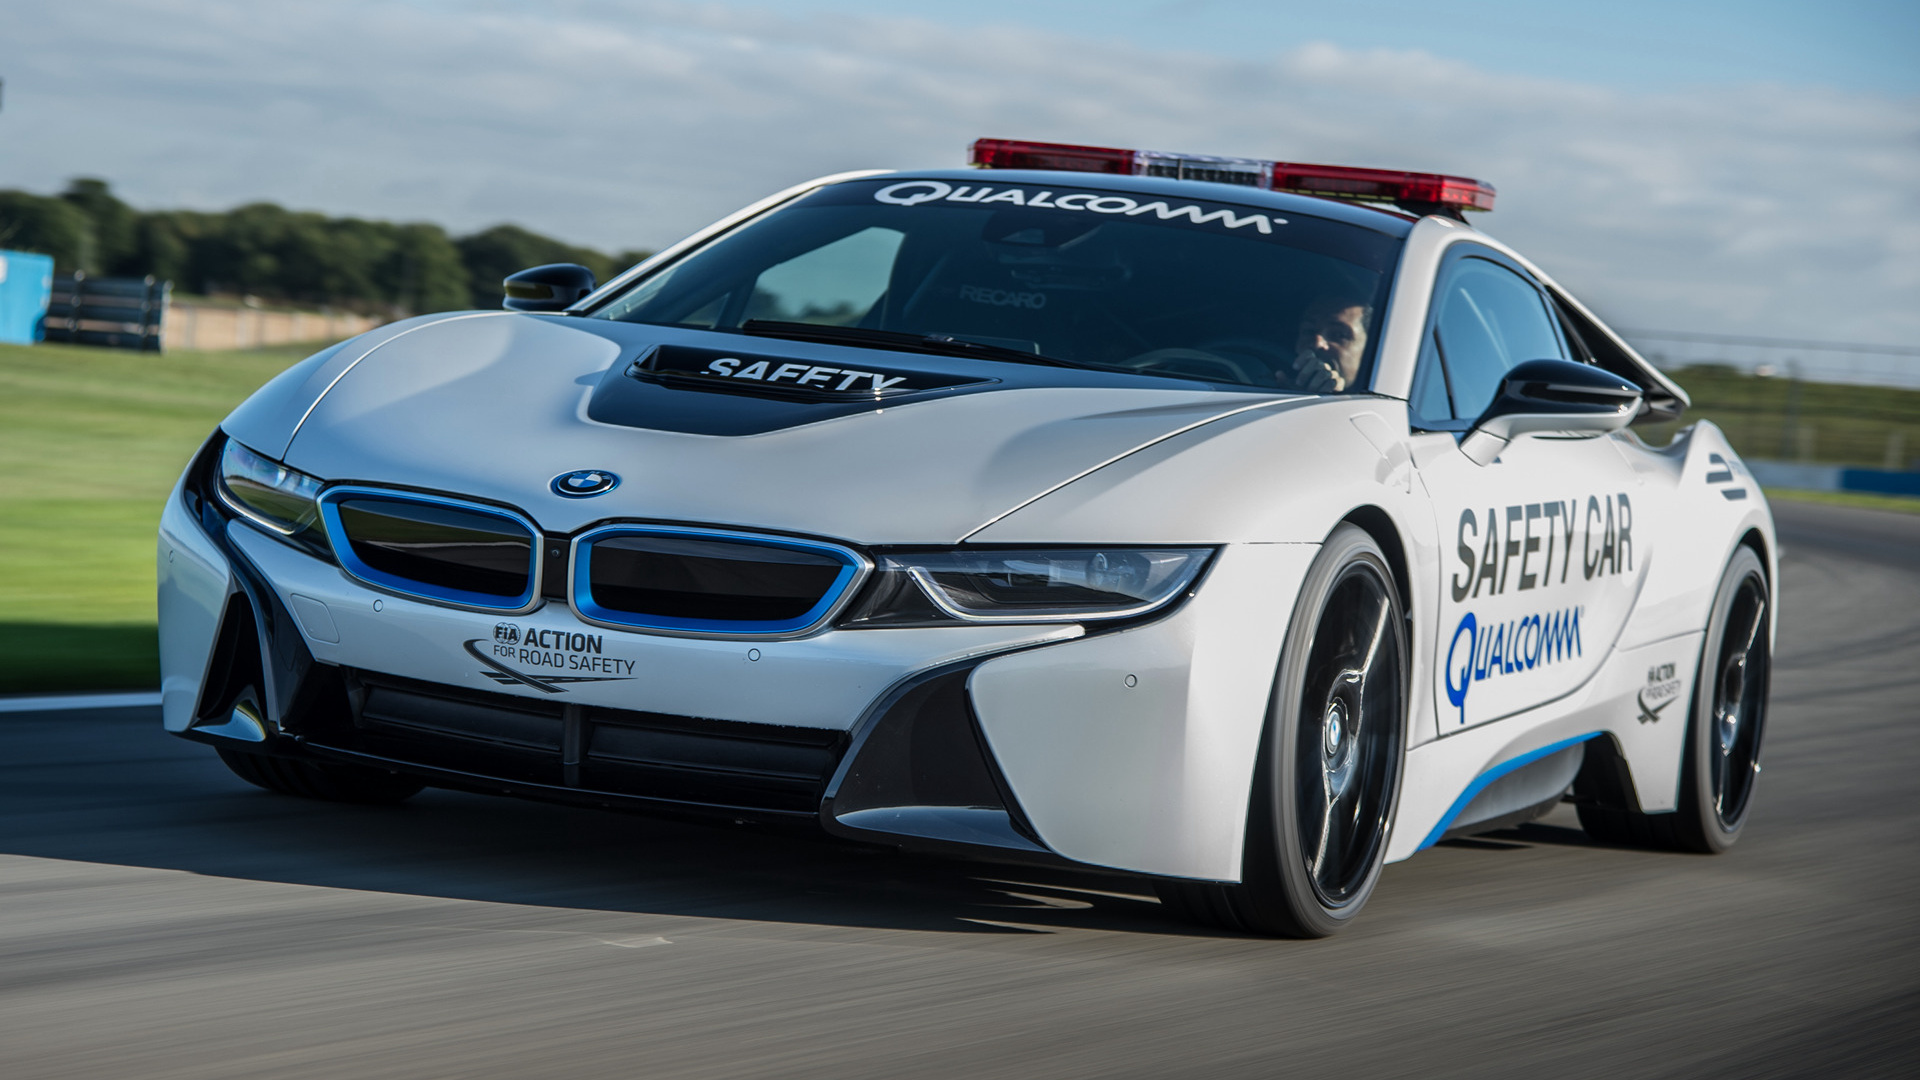 BMW I8 Formula E Safety Car 2014 Wallpapers And HD Images